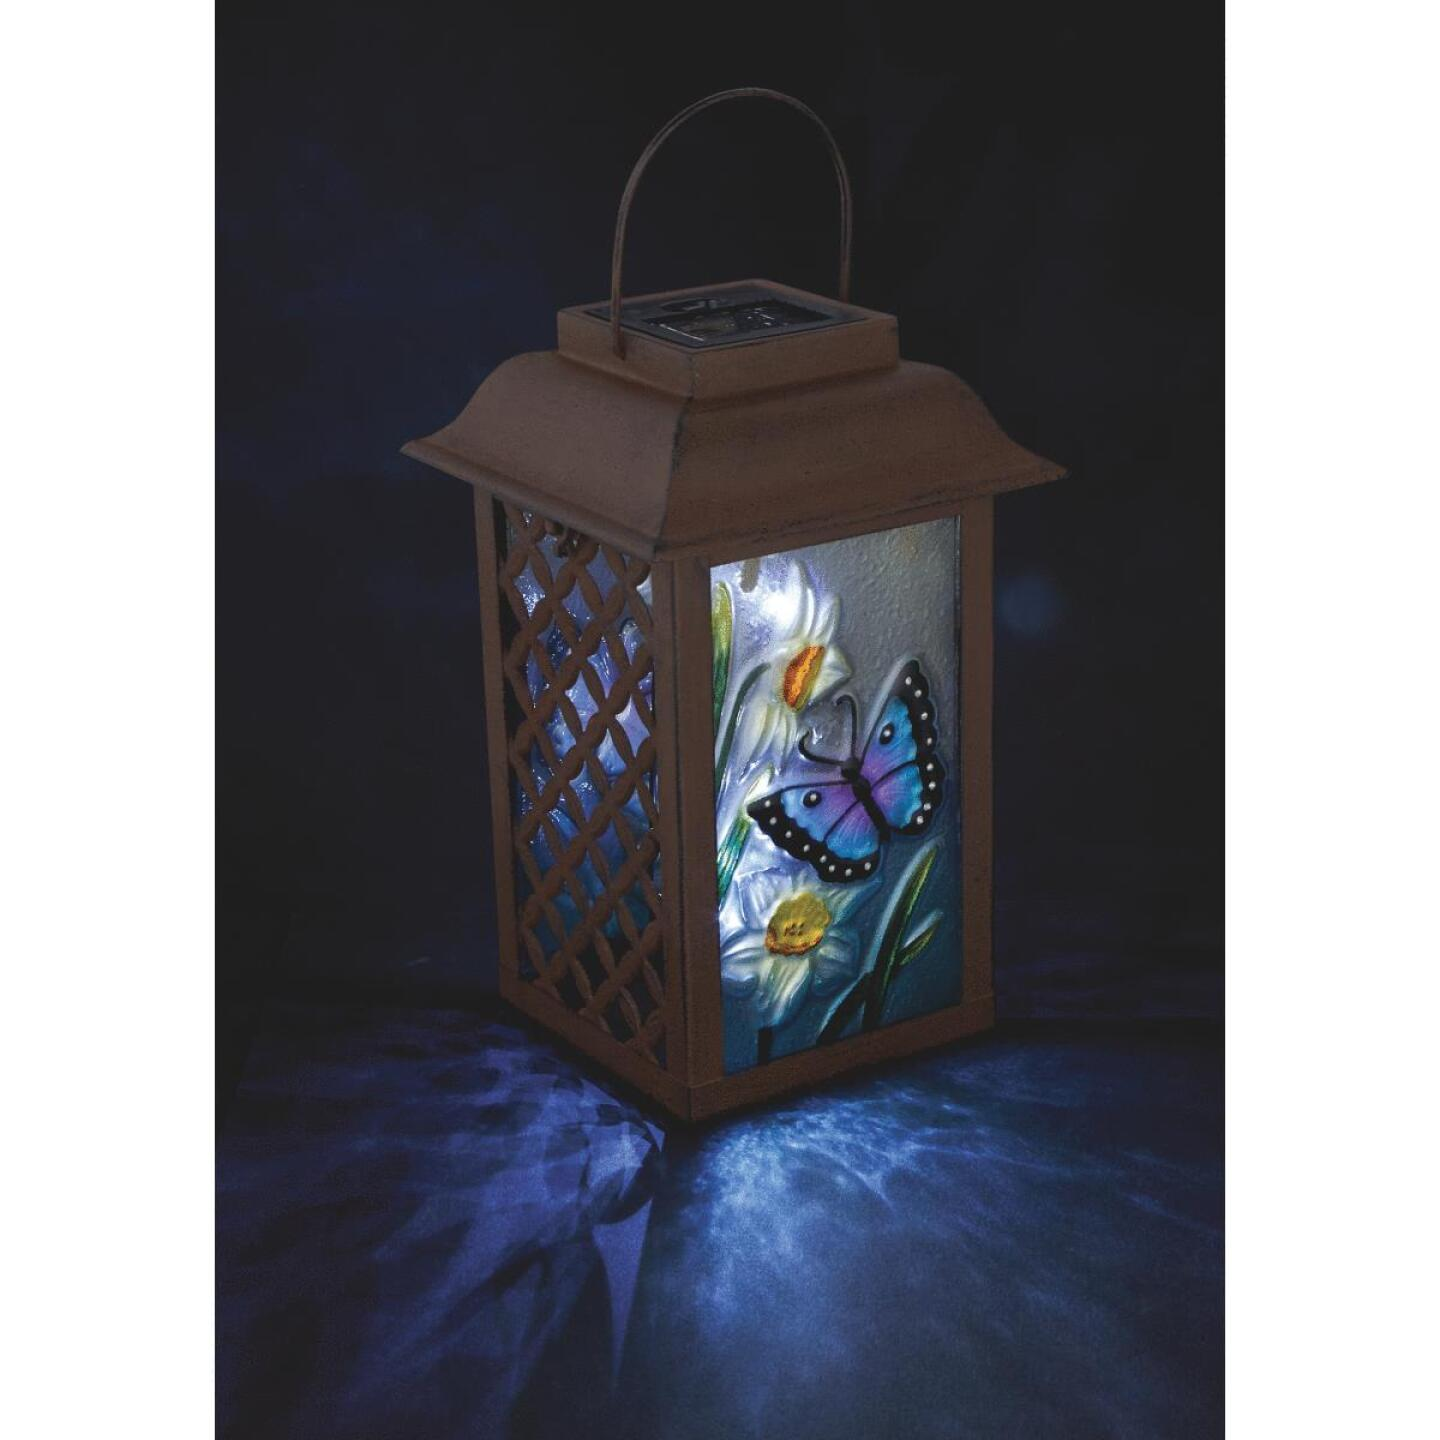 Outdoor Expressions 6 In. W. x 9.5 In. H. x 6 In. D. Solar Patio Latern Image 3